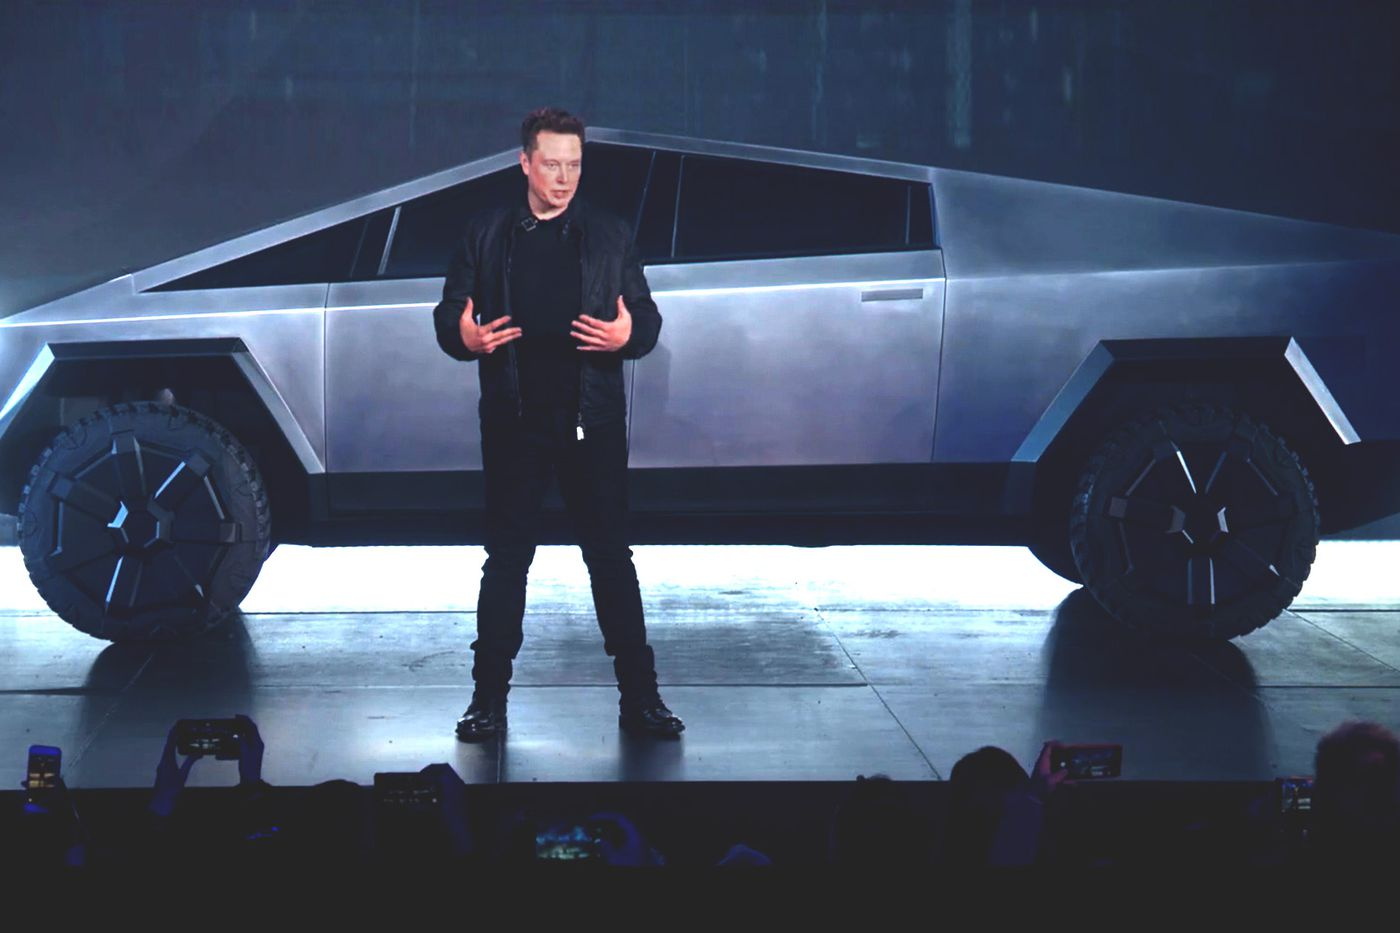 Elon Musks Cybertruck Is Here And So Are The Jokes The Verge